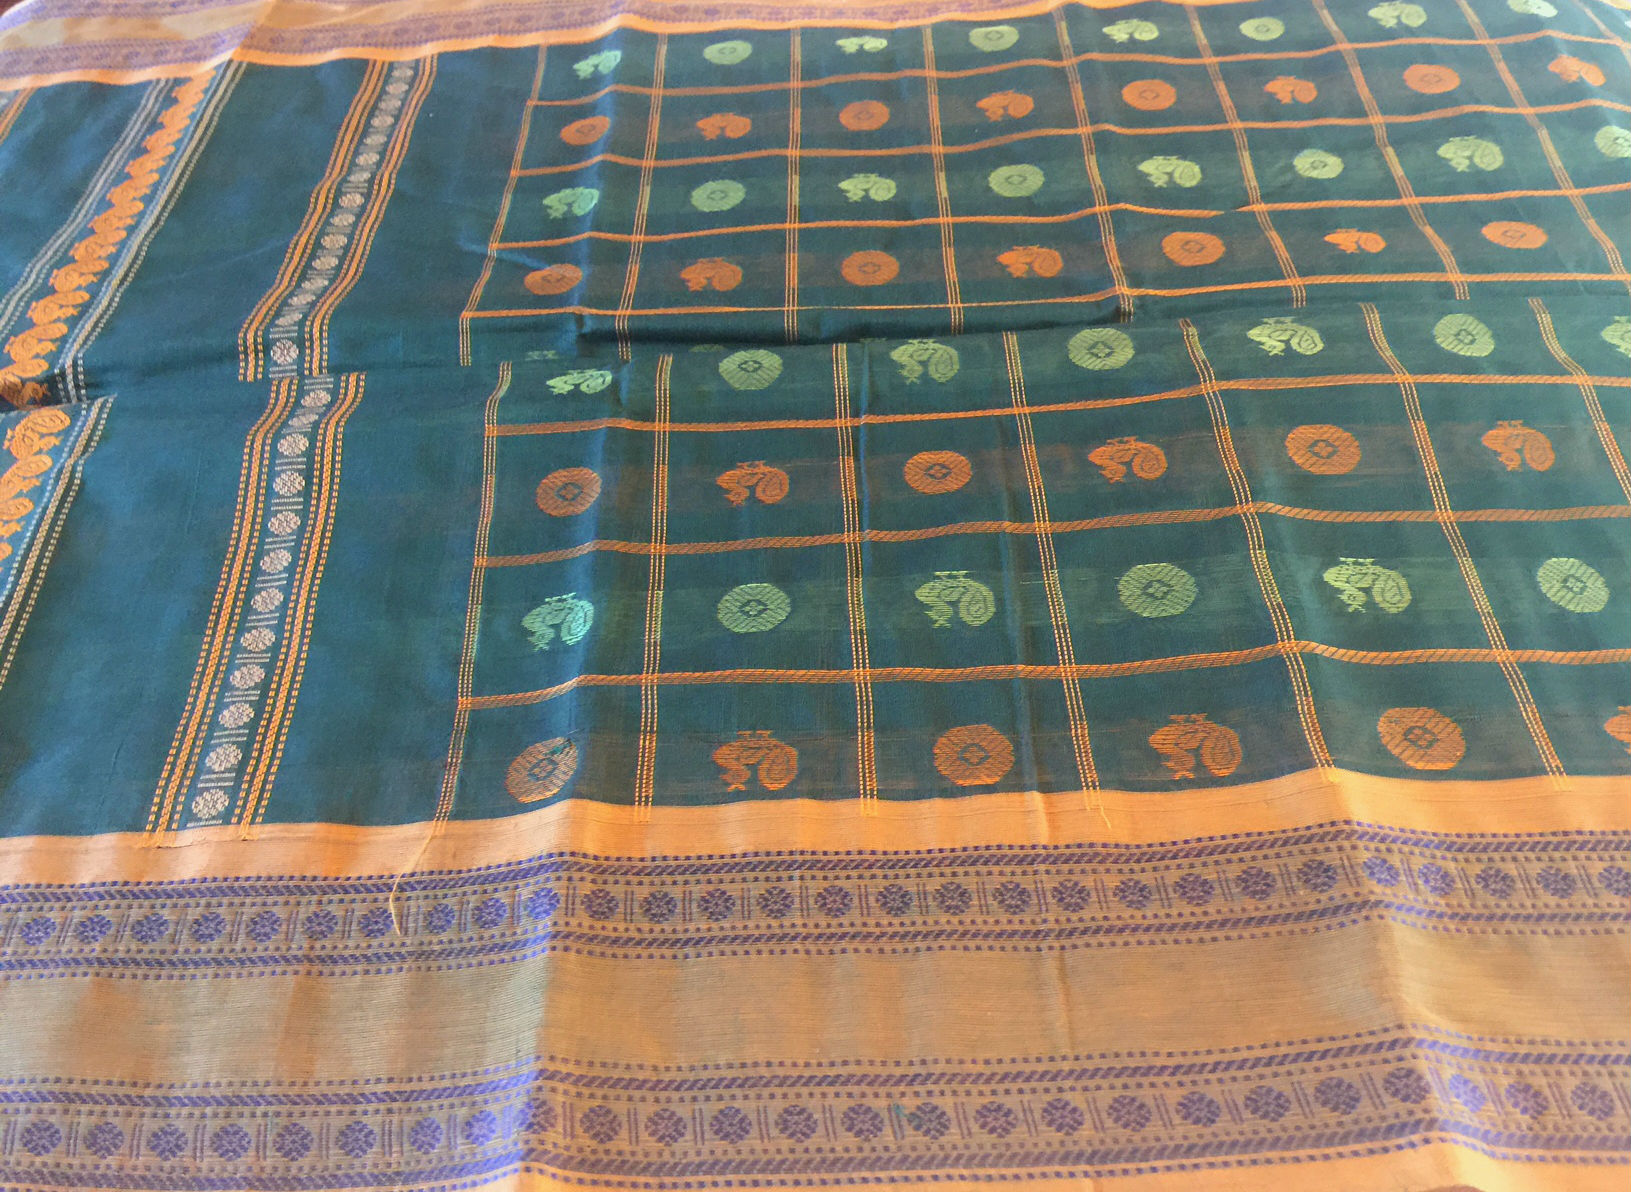 Sale! 20% Off! Kanchipuram Ayirum Butta Green and Mustard